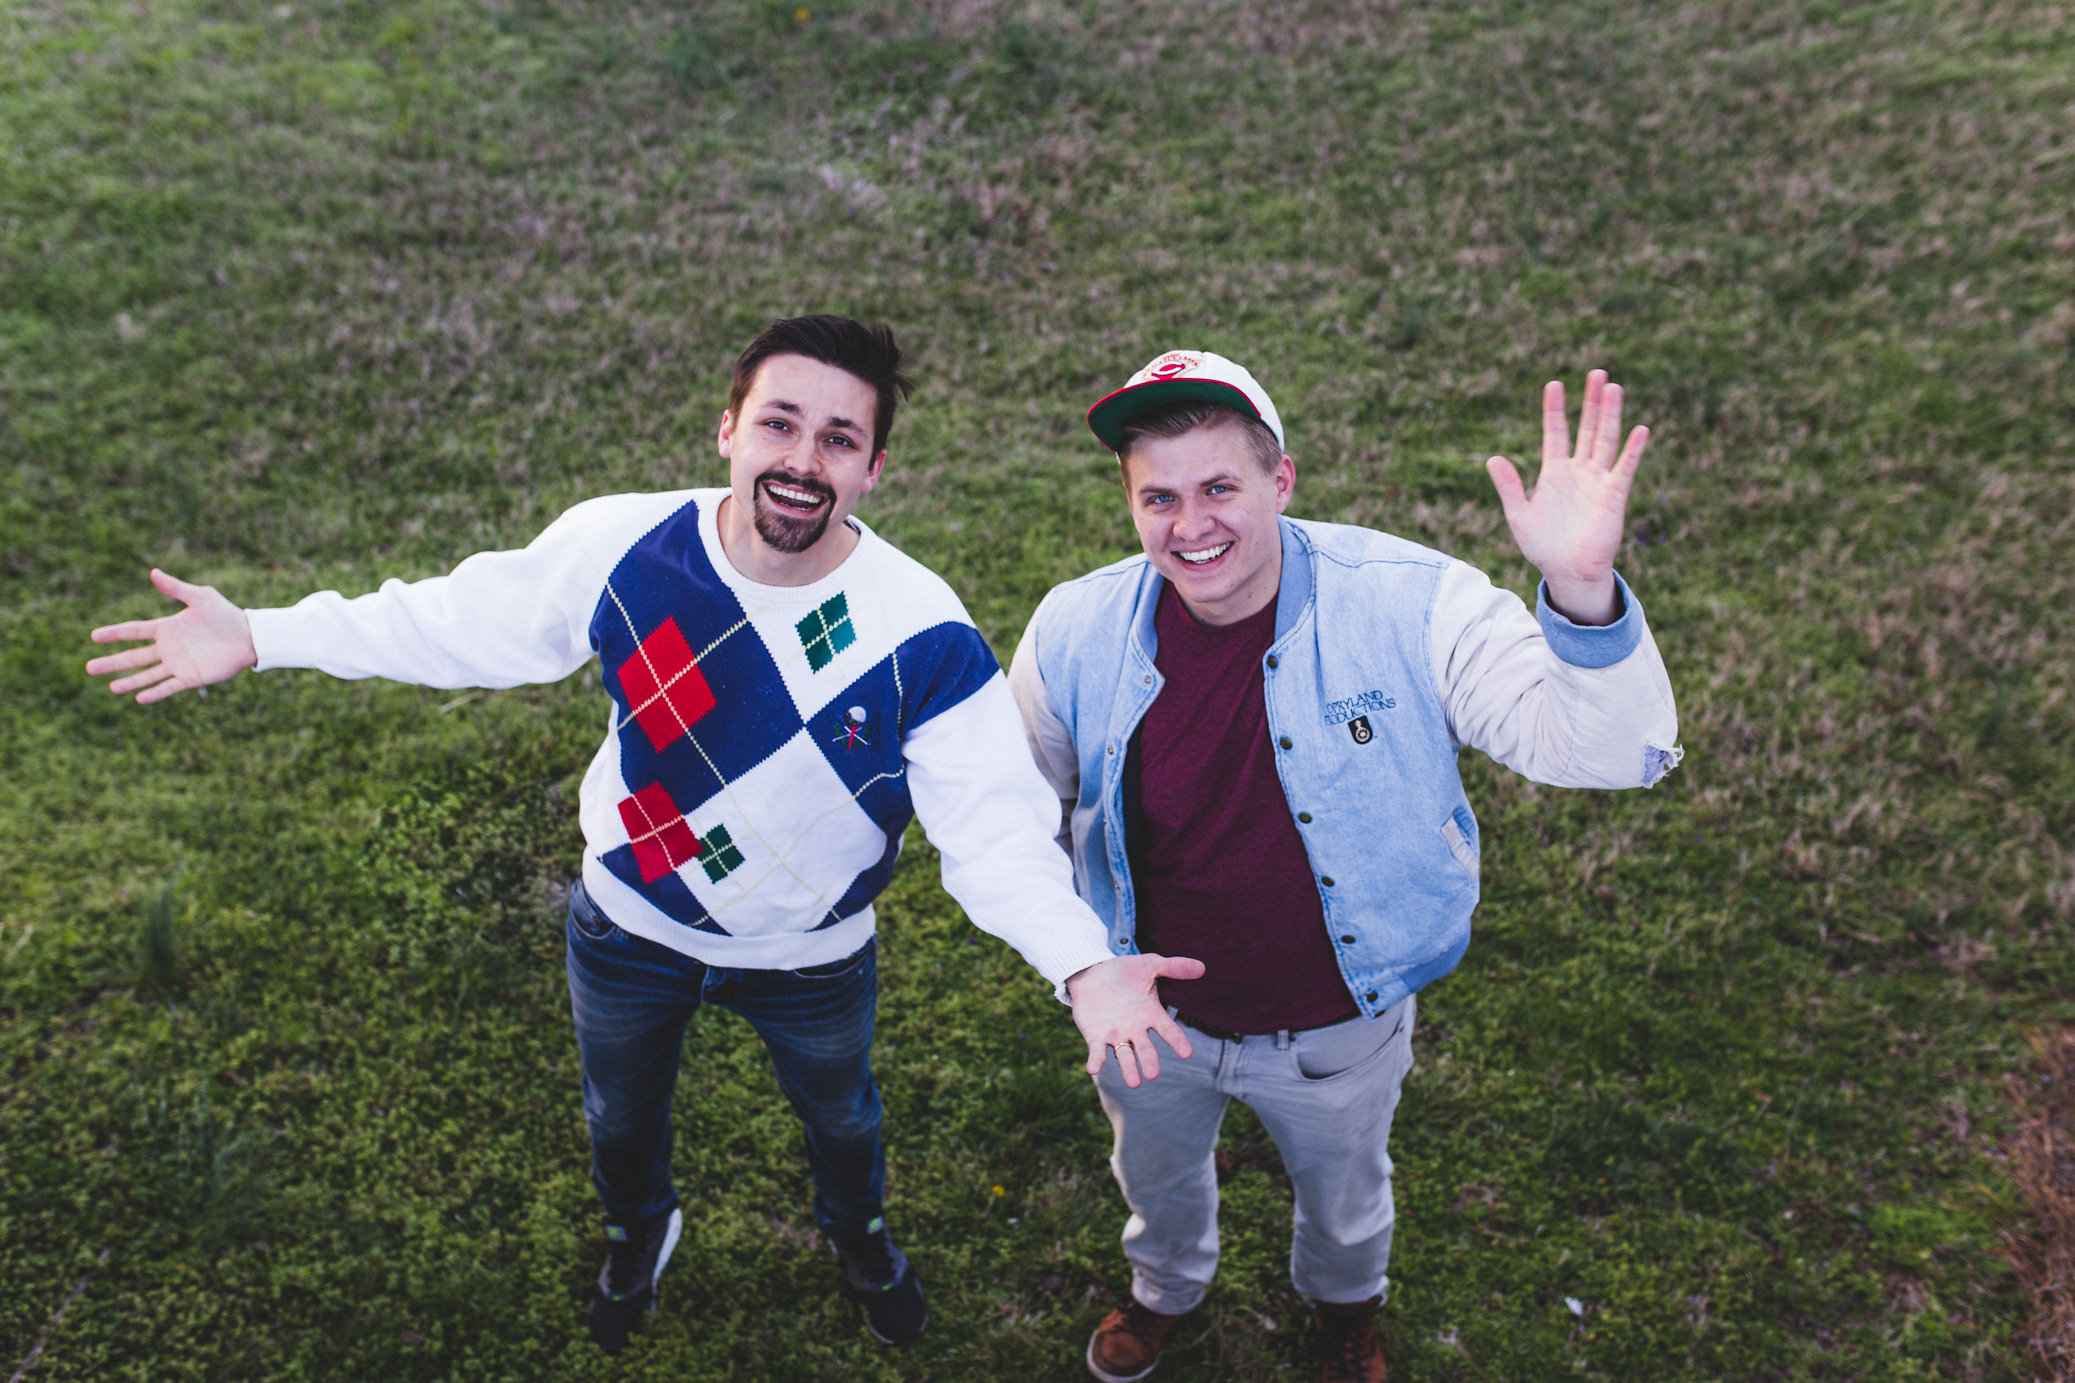 We've been empowered to create things that spark ideas and emotions. - Austin and Colin are a comedic duo that specializes in making videos that are funny, informative, and catchy. The pair learned at a young age that to get noticed, you have to think different, be different, and see different.